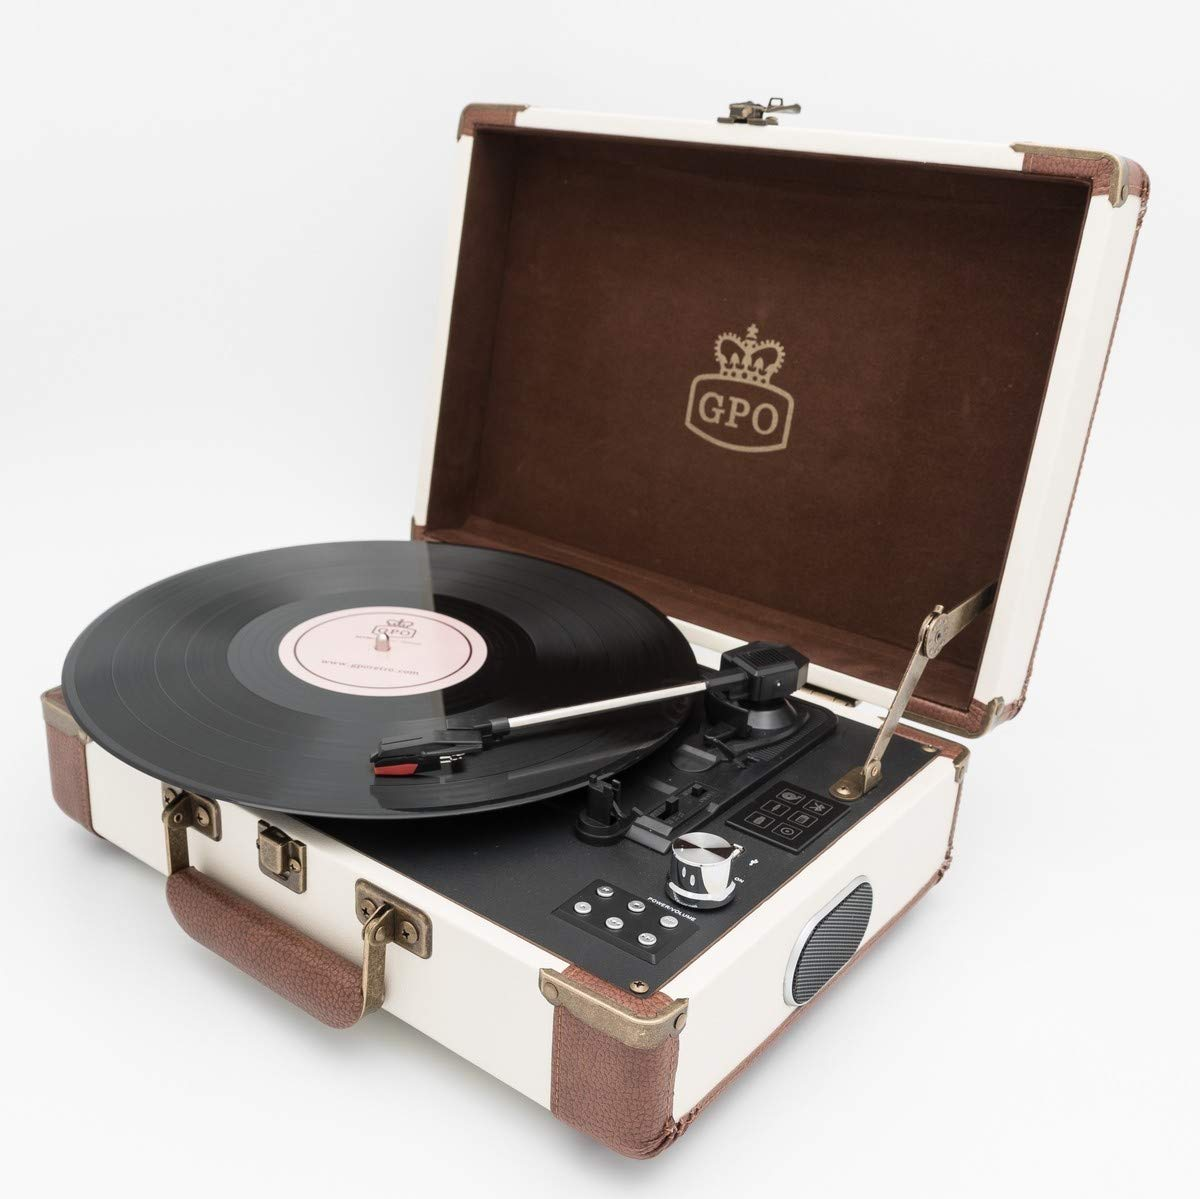 GPO Ambassador Retro Stand-Alone Turntable with Bluetooth Transmitter and Built-In Speakers Cream /& Tan